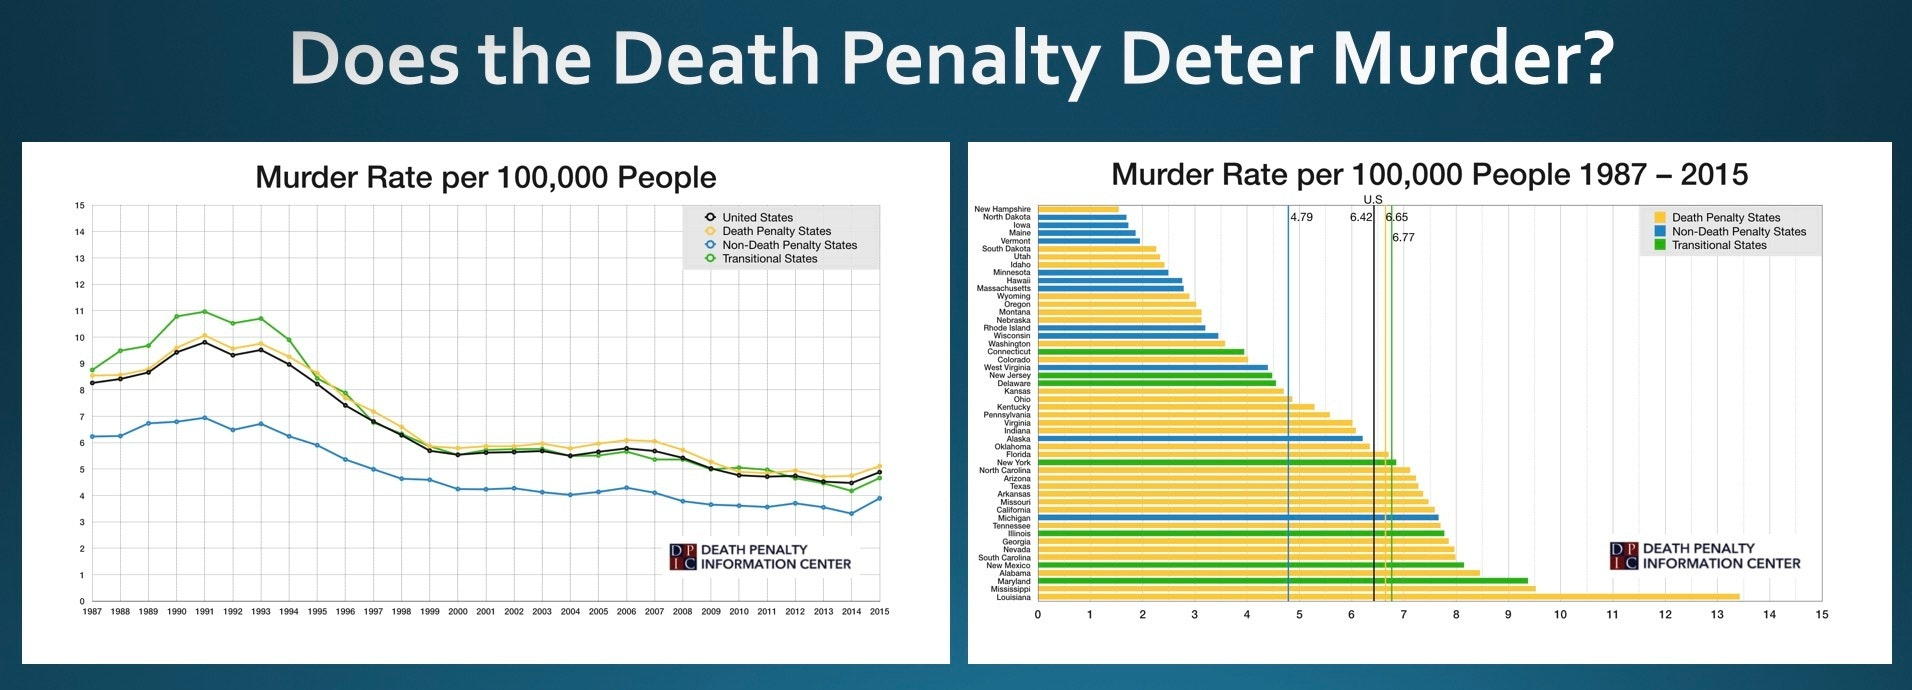 crime rates in countries with death penalty vs. without